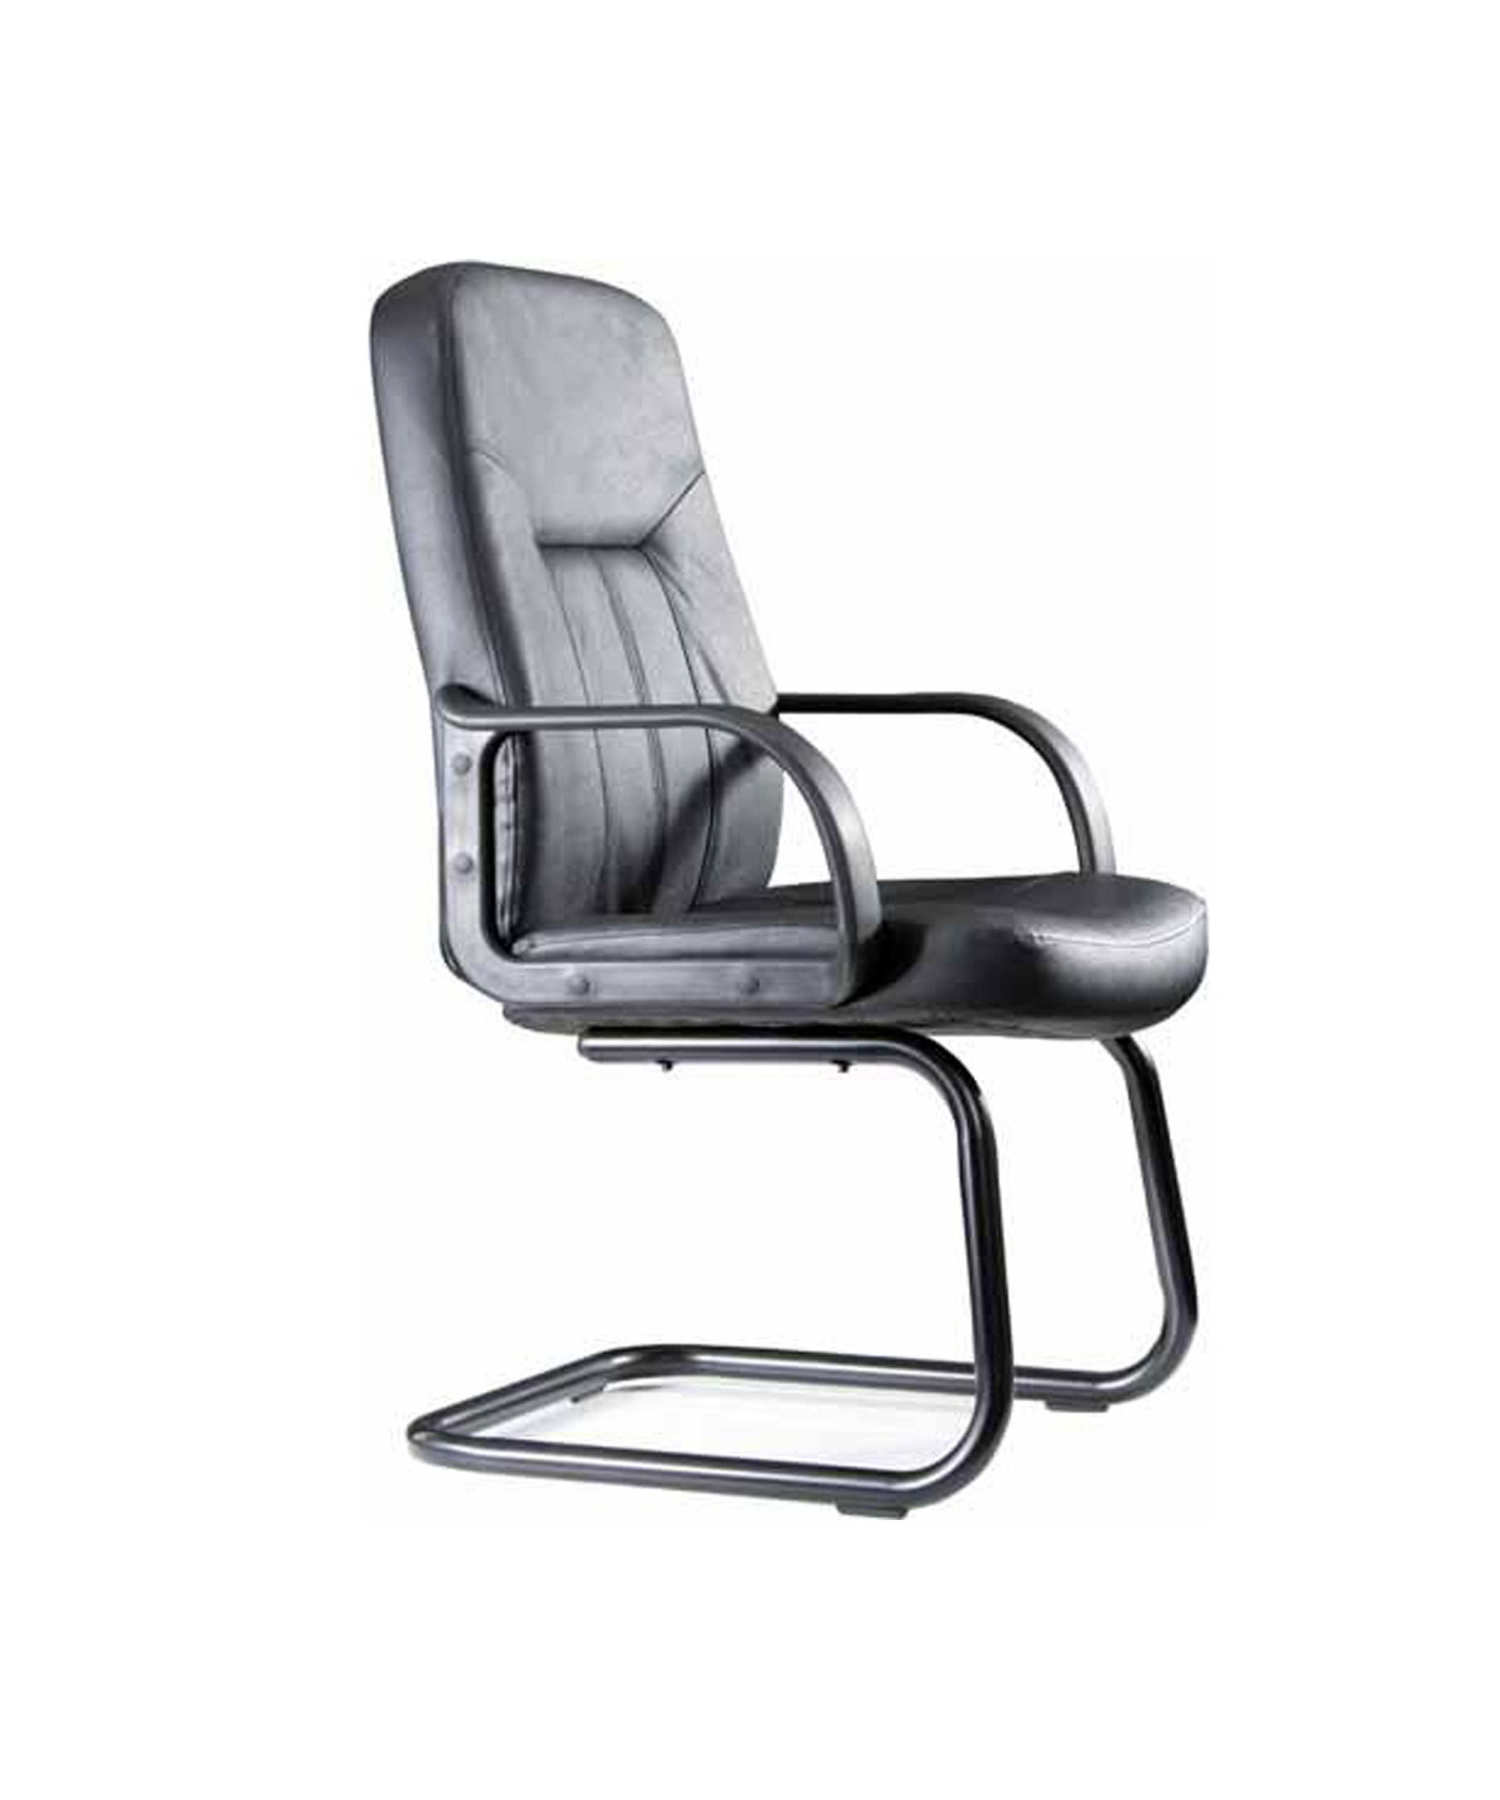 Armchair Confidante Skate With Arms Fixed-up Seat And Backstop Upholstered In Similpiel Color Black TAPHOLE AND CURLED Mod